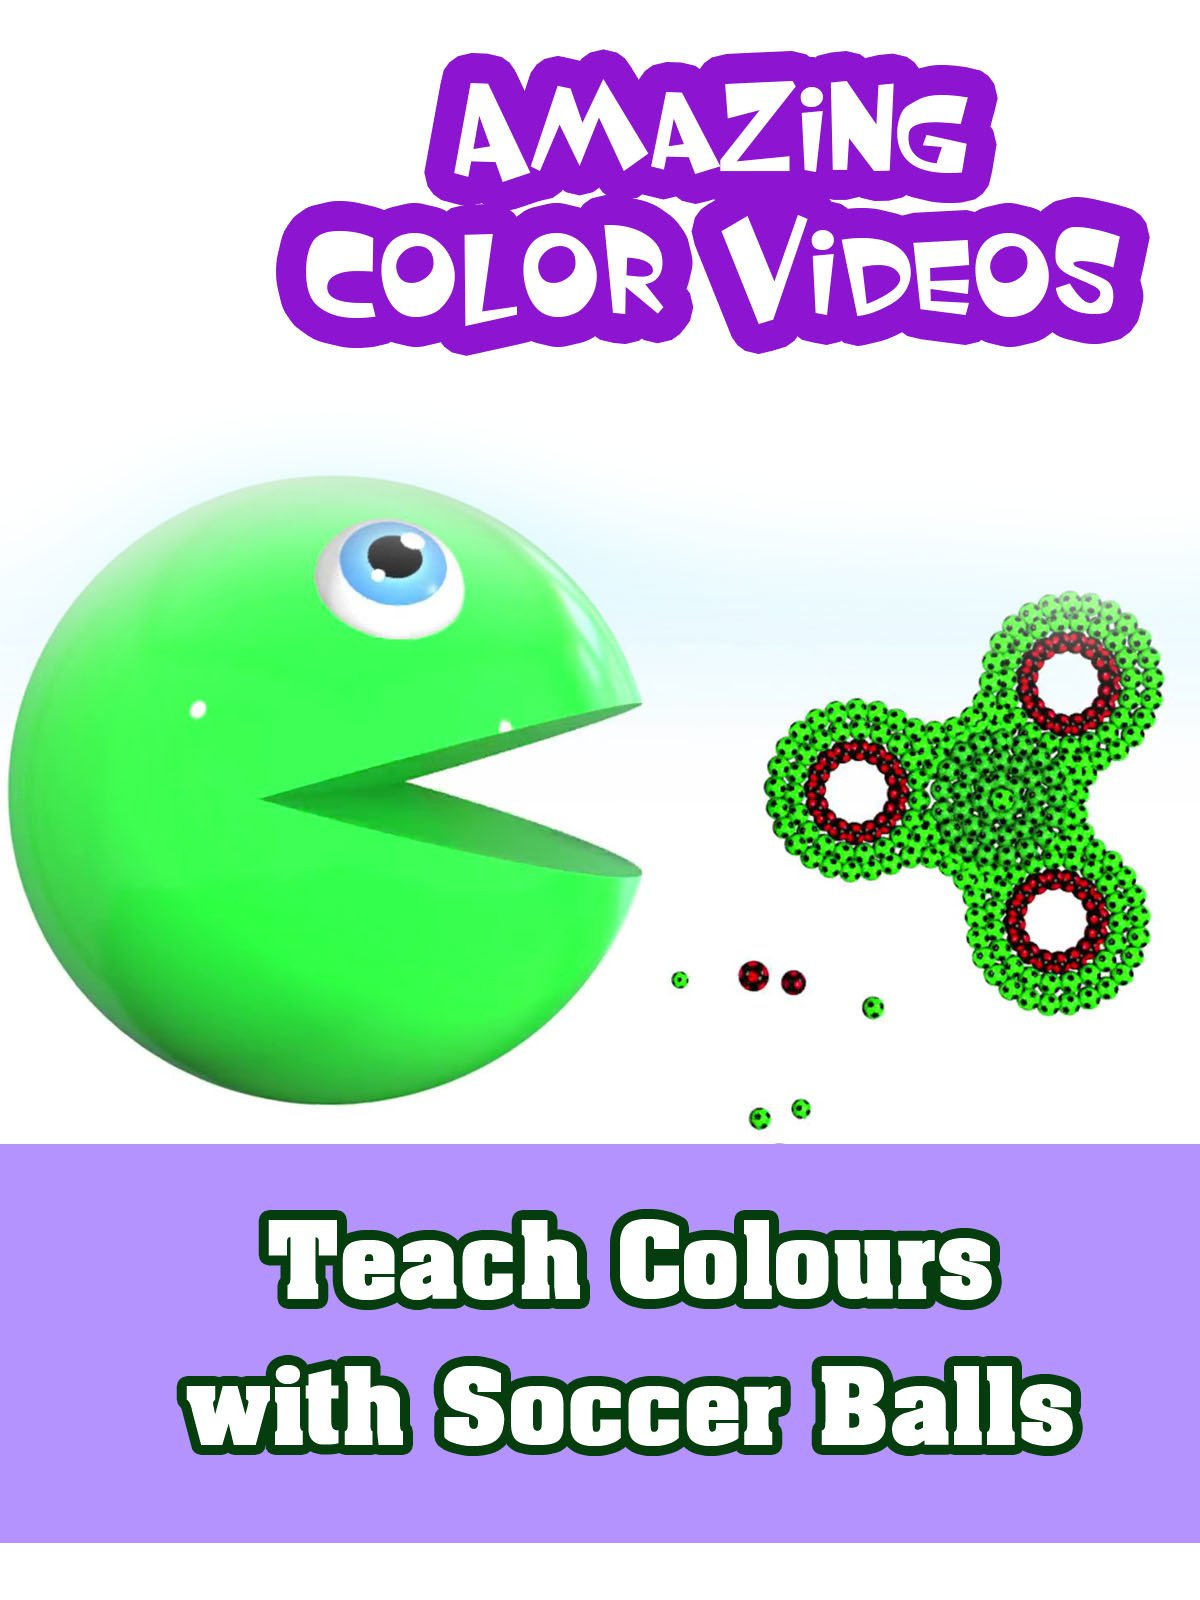 Teach Colours with Soccer Balls - Amazing Colors Videos